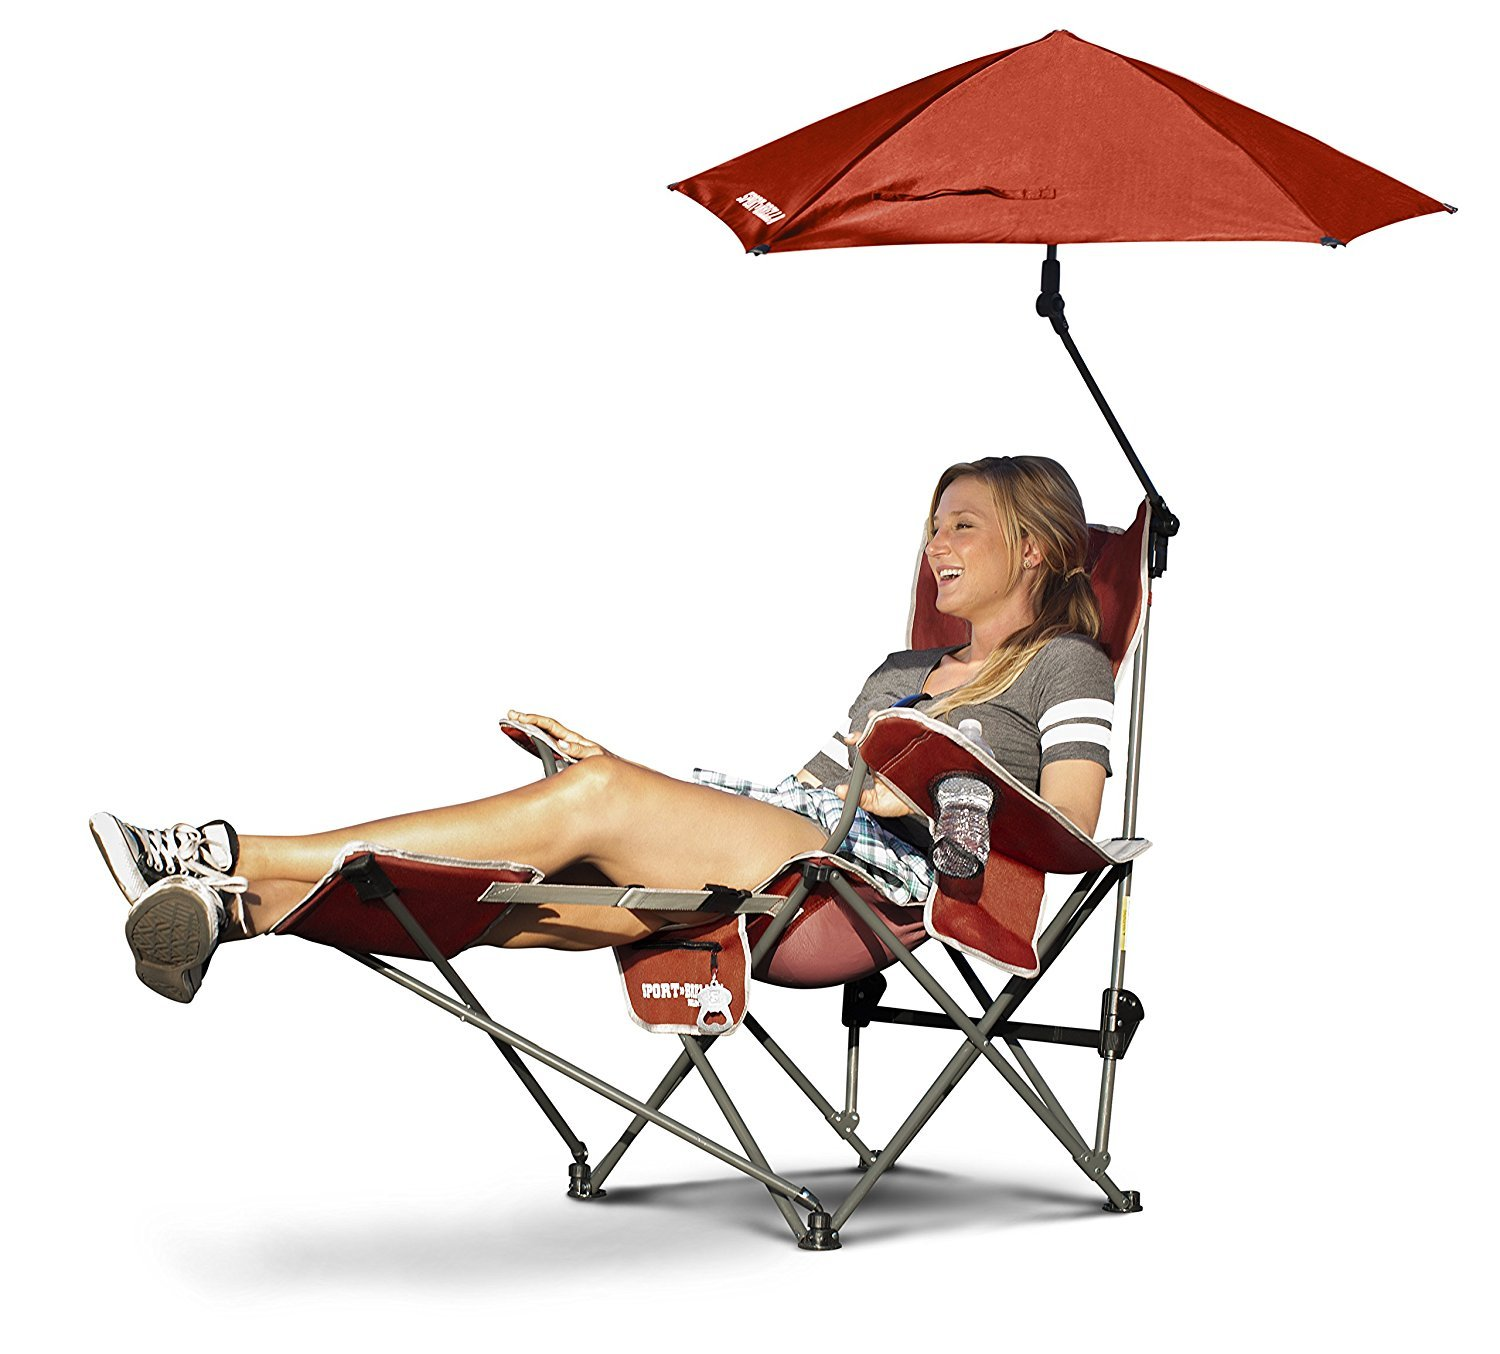 Sport-Brella Recliner Chair: 3-Position Recliner W/ Full Coverage Umbrella [並行輸入品] B077QRCTG8